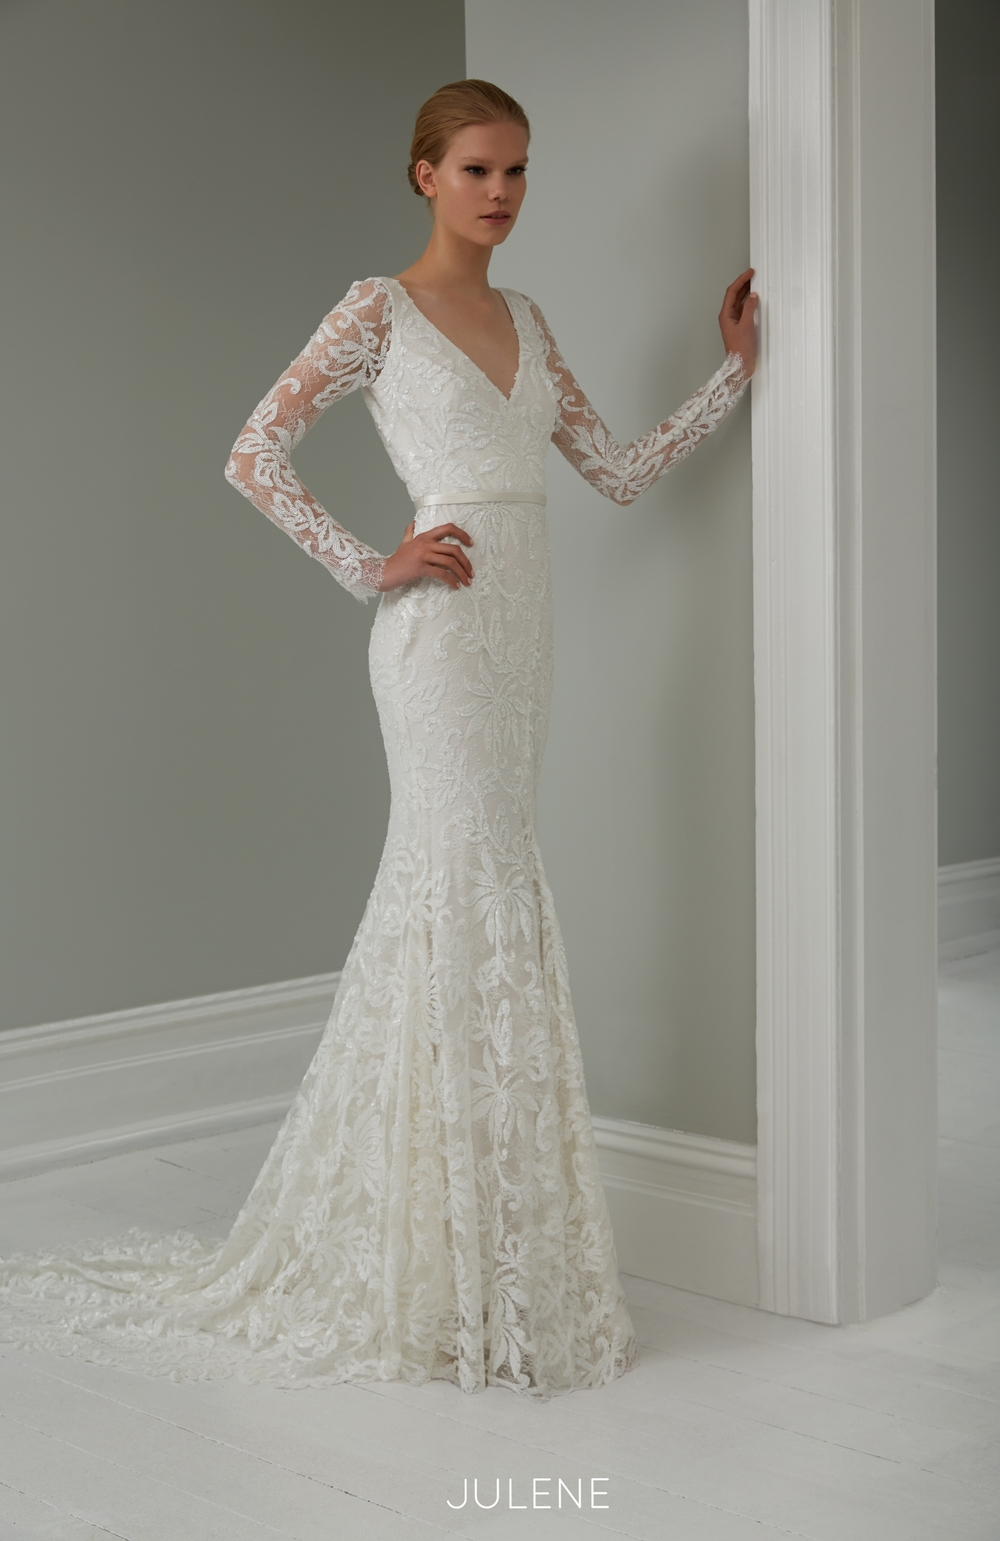 JULENE GOWN BEADED LACE.jpg